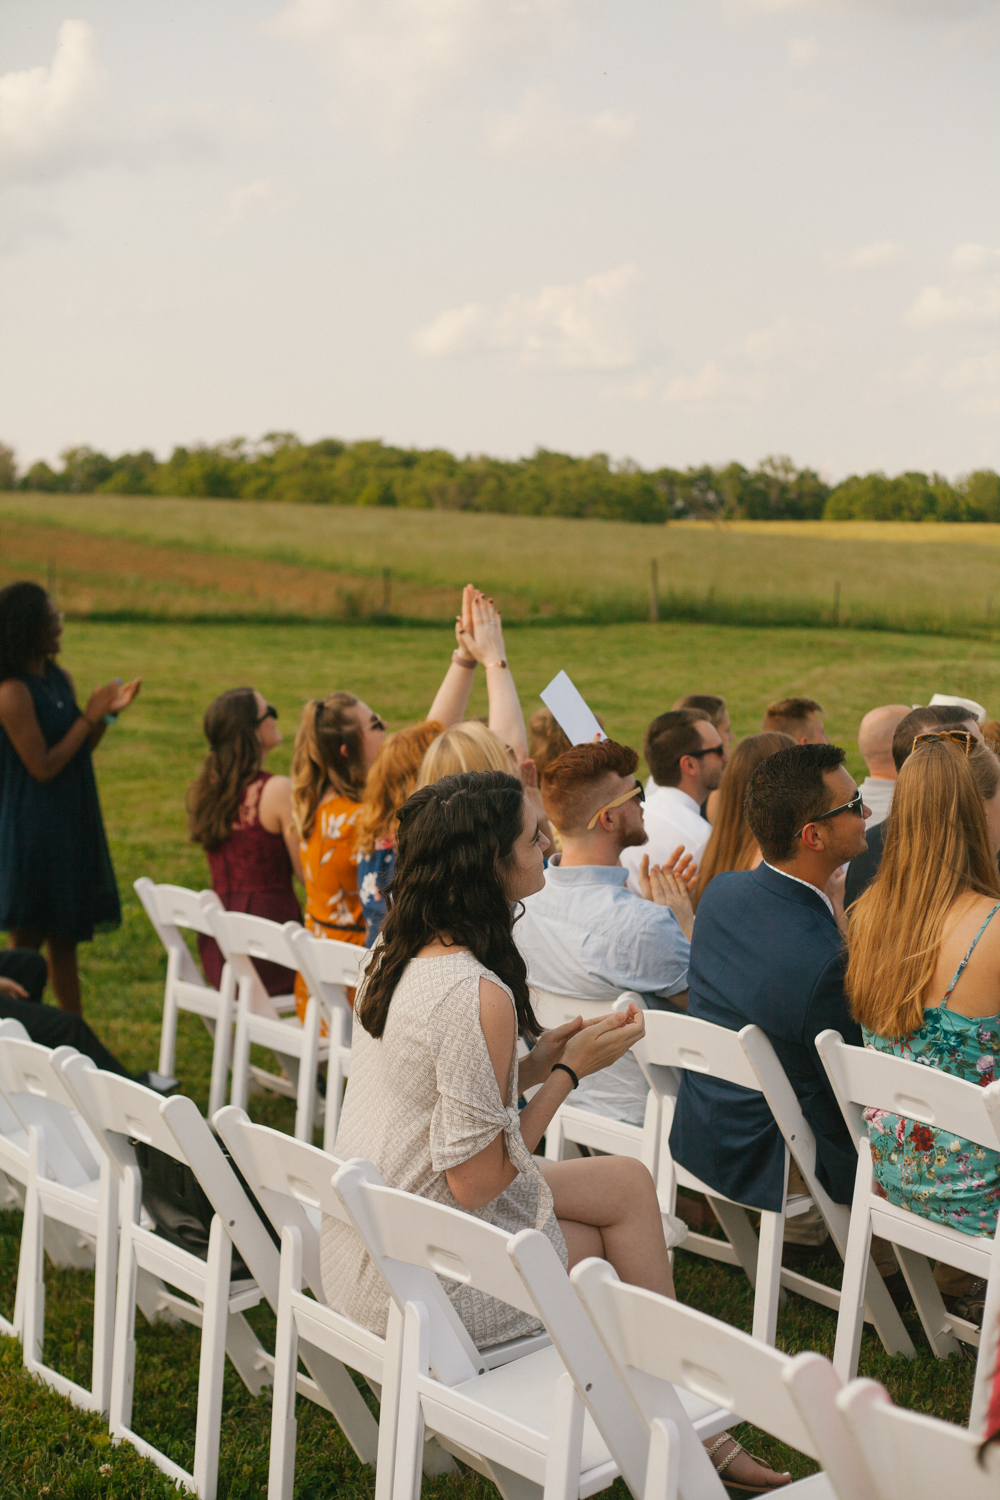 2019.06.01_CraskWedding_Starks-110.jpg